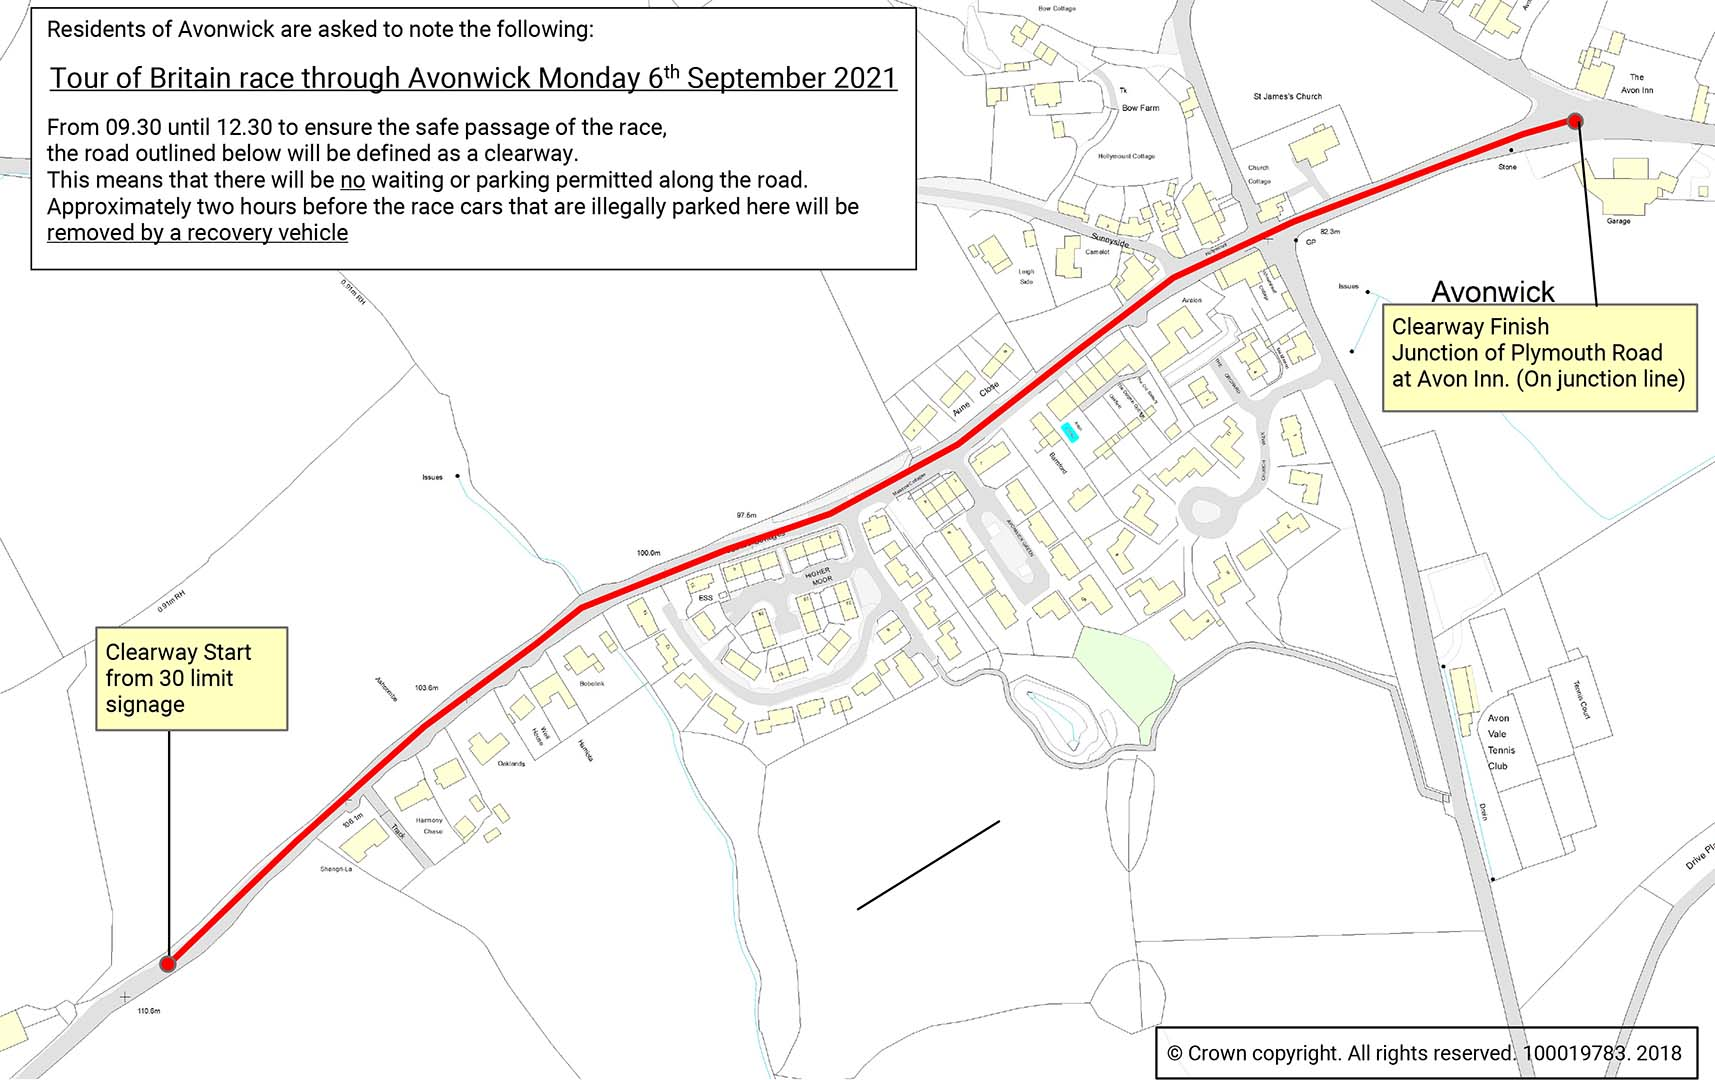 Map showing Clearway in Avonwick on 6th September.